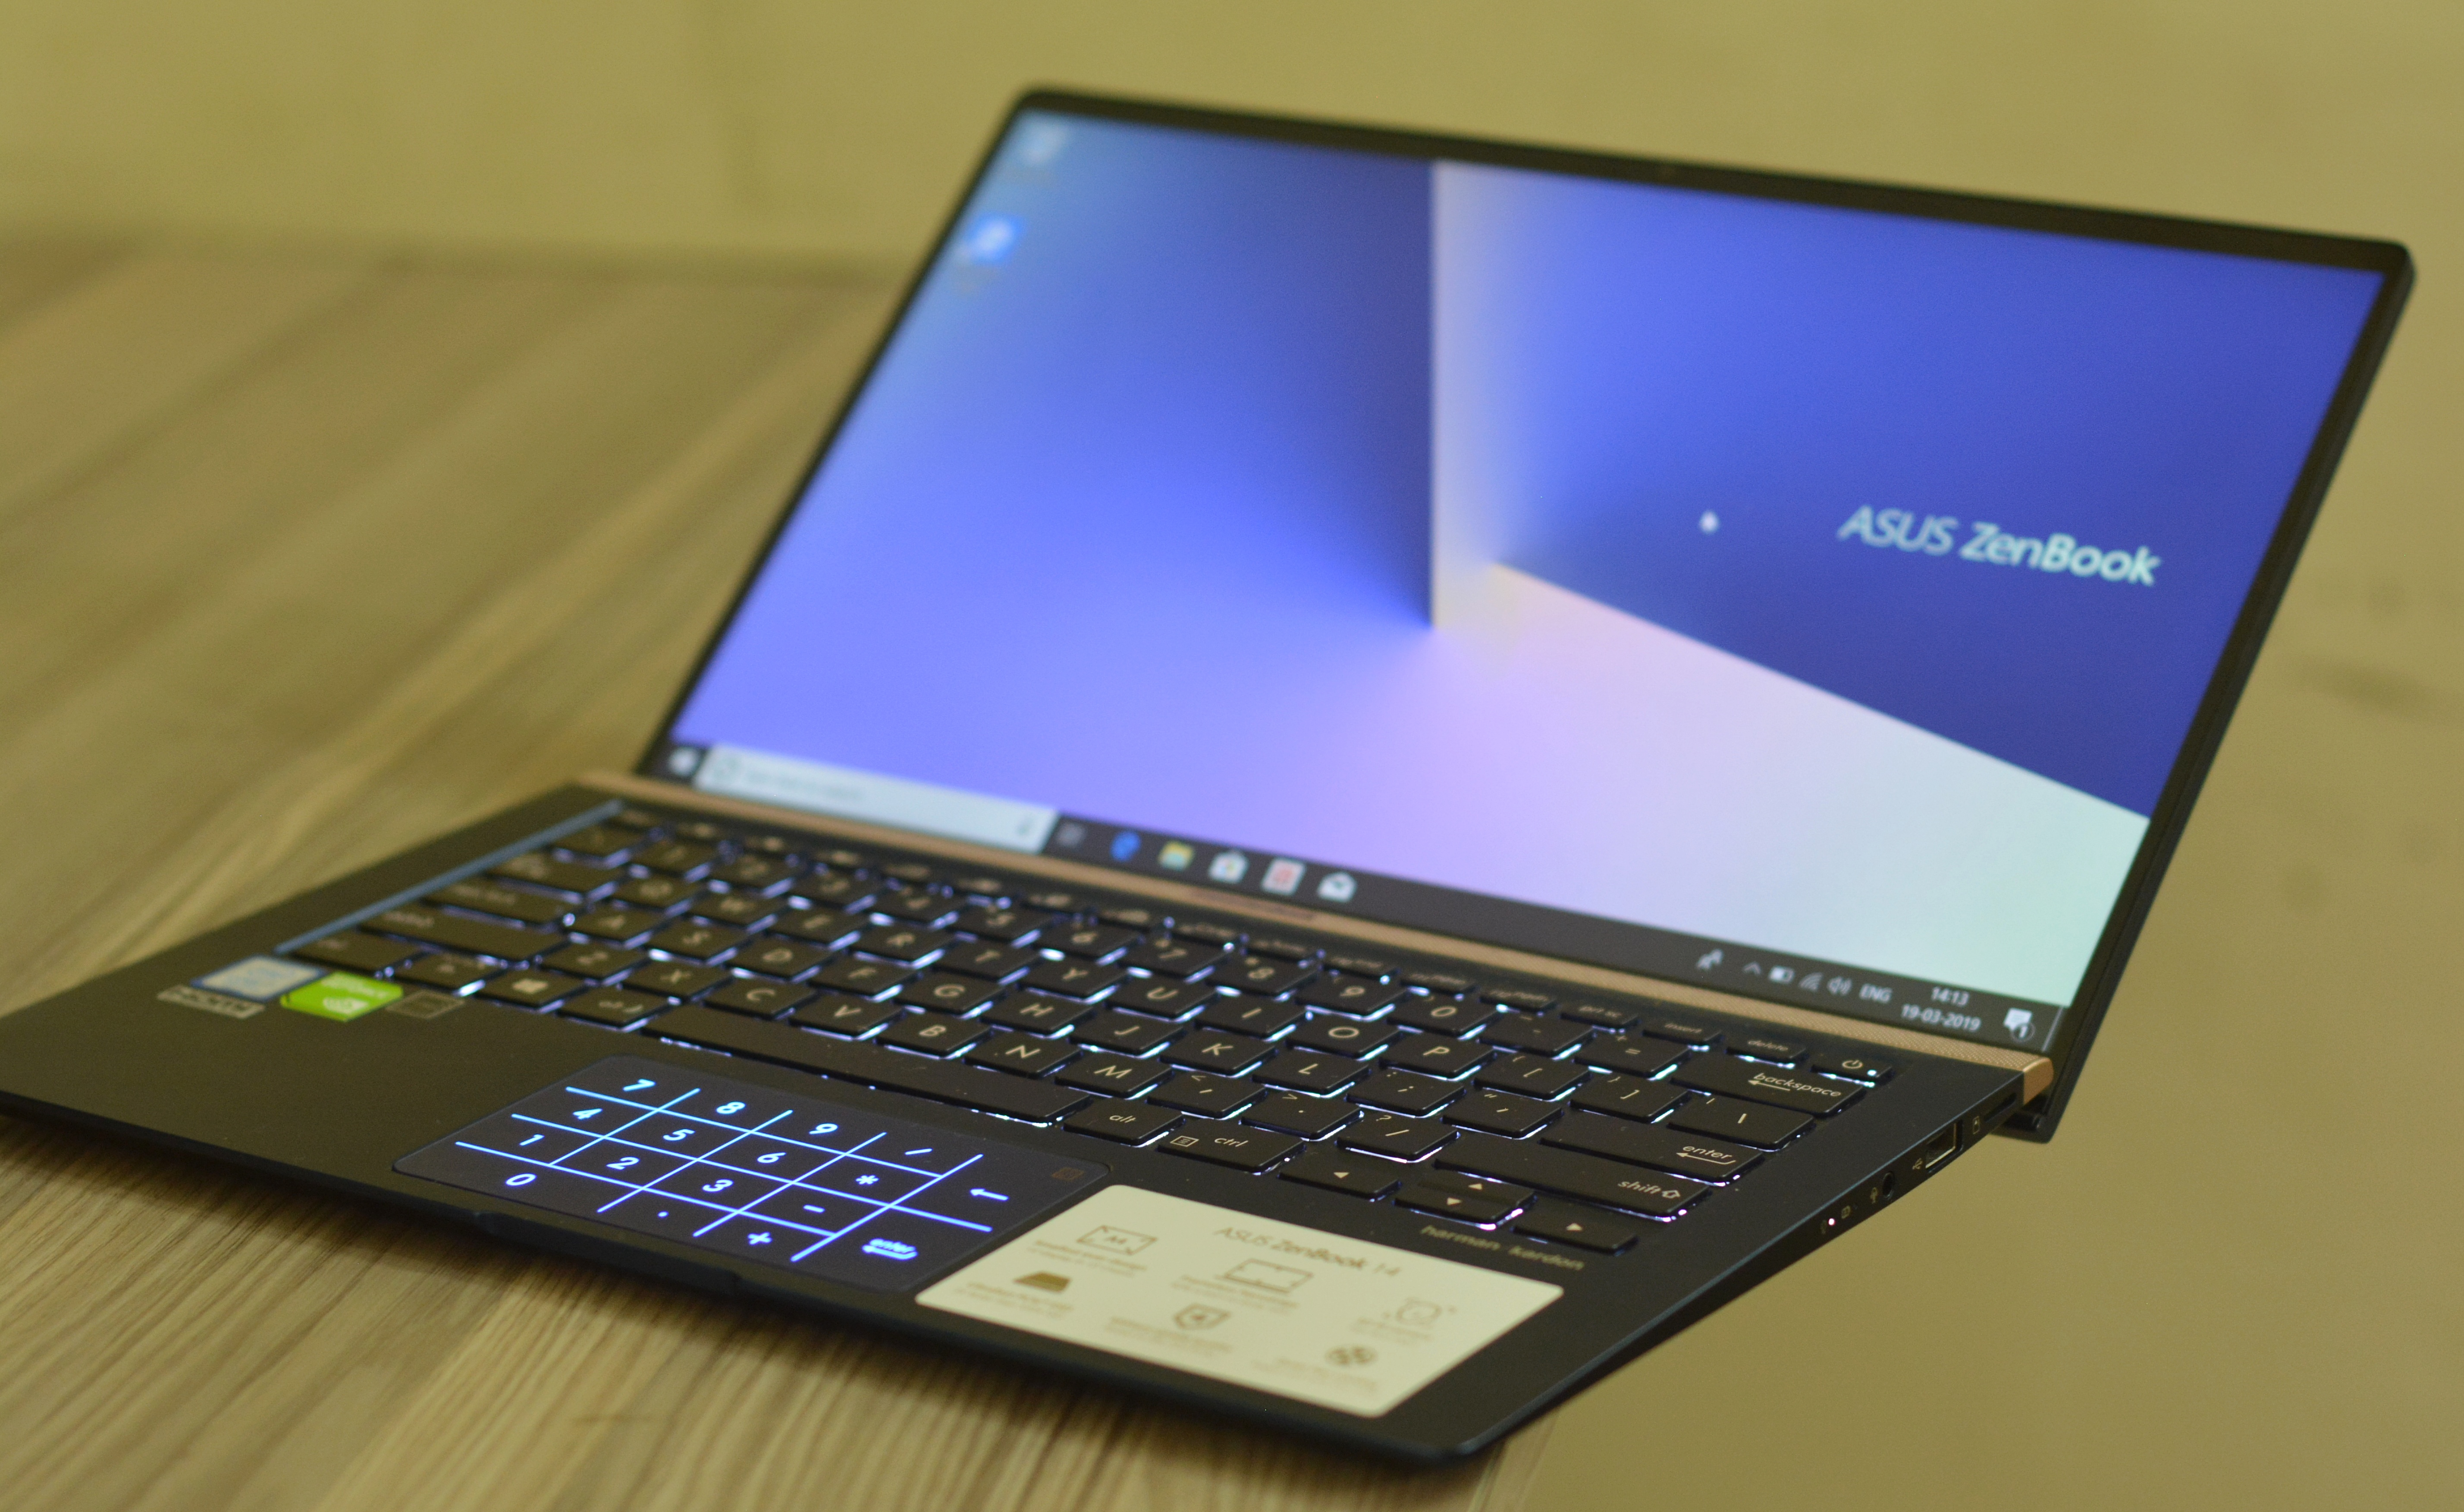 Asus Zenbook 14 UX433F Laptop Review-The compact performer - TechUNeed